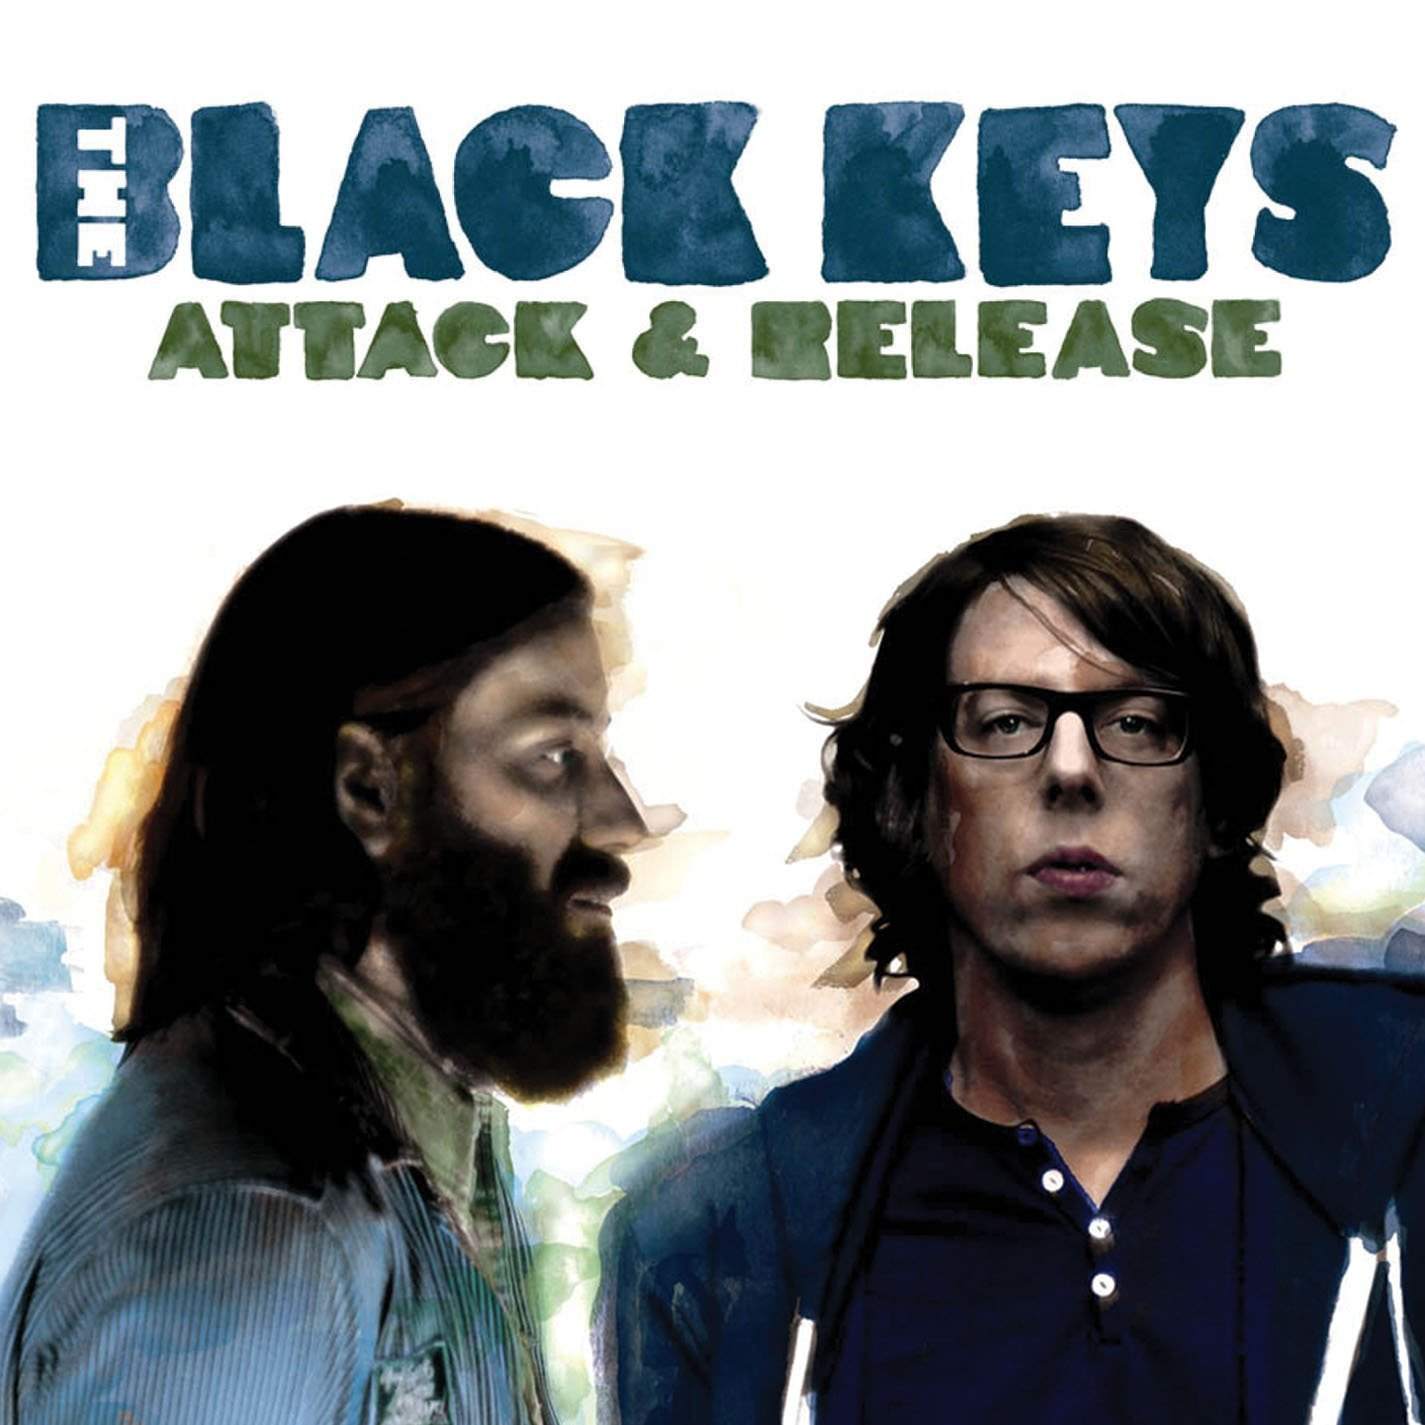 The Black Keys, Attack & Release